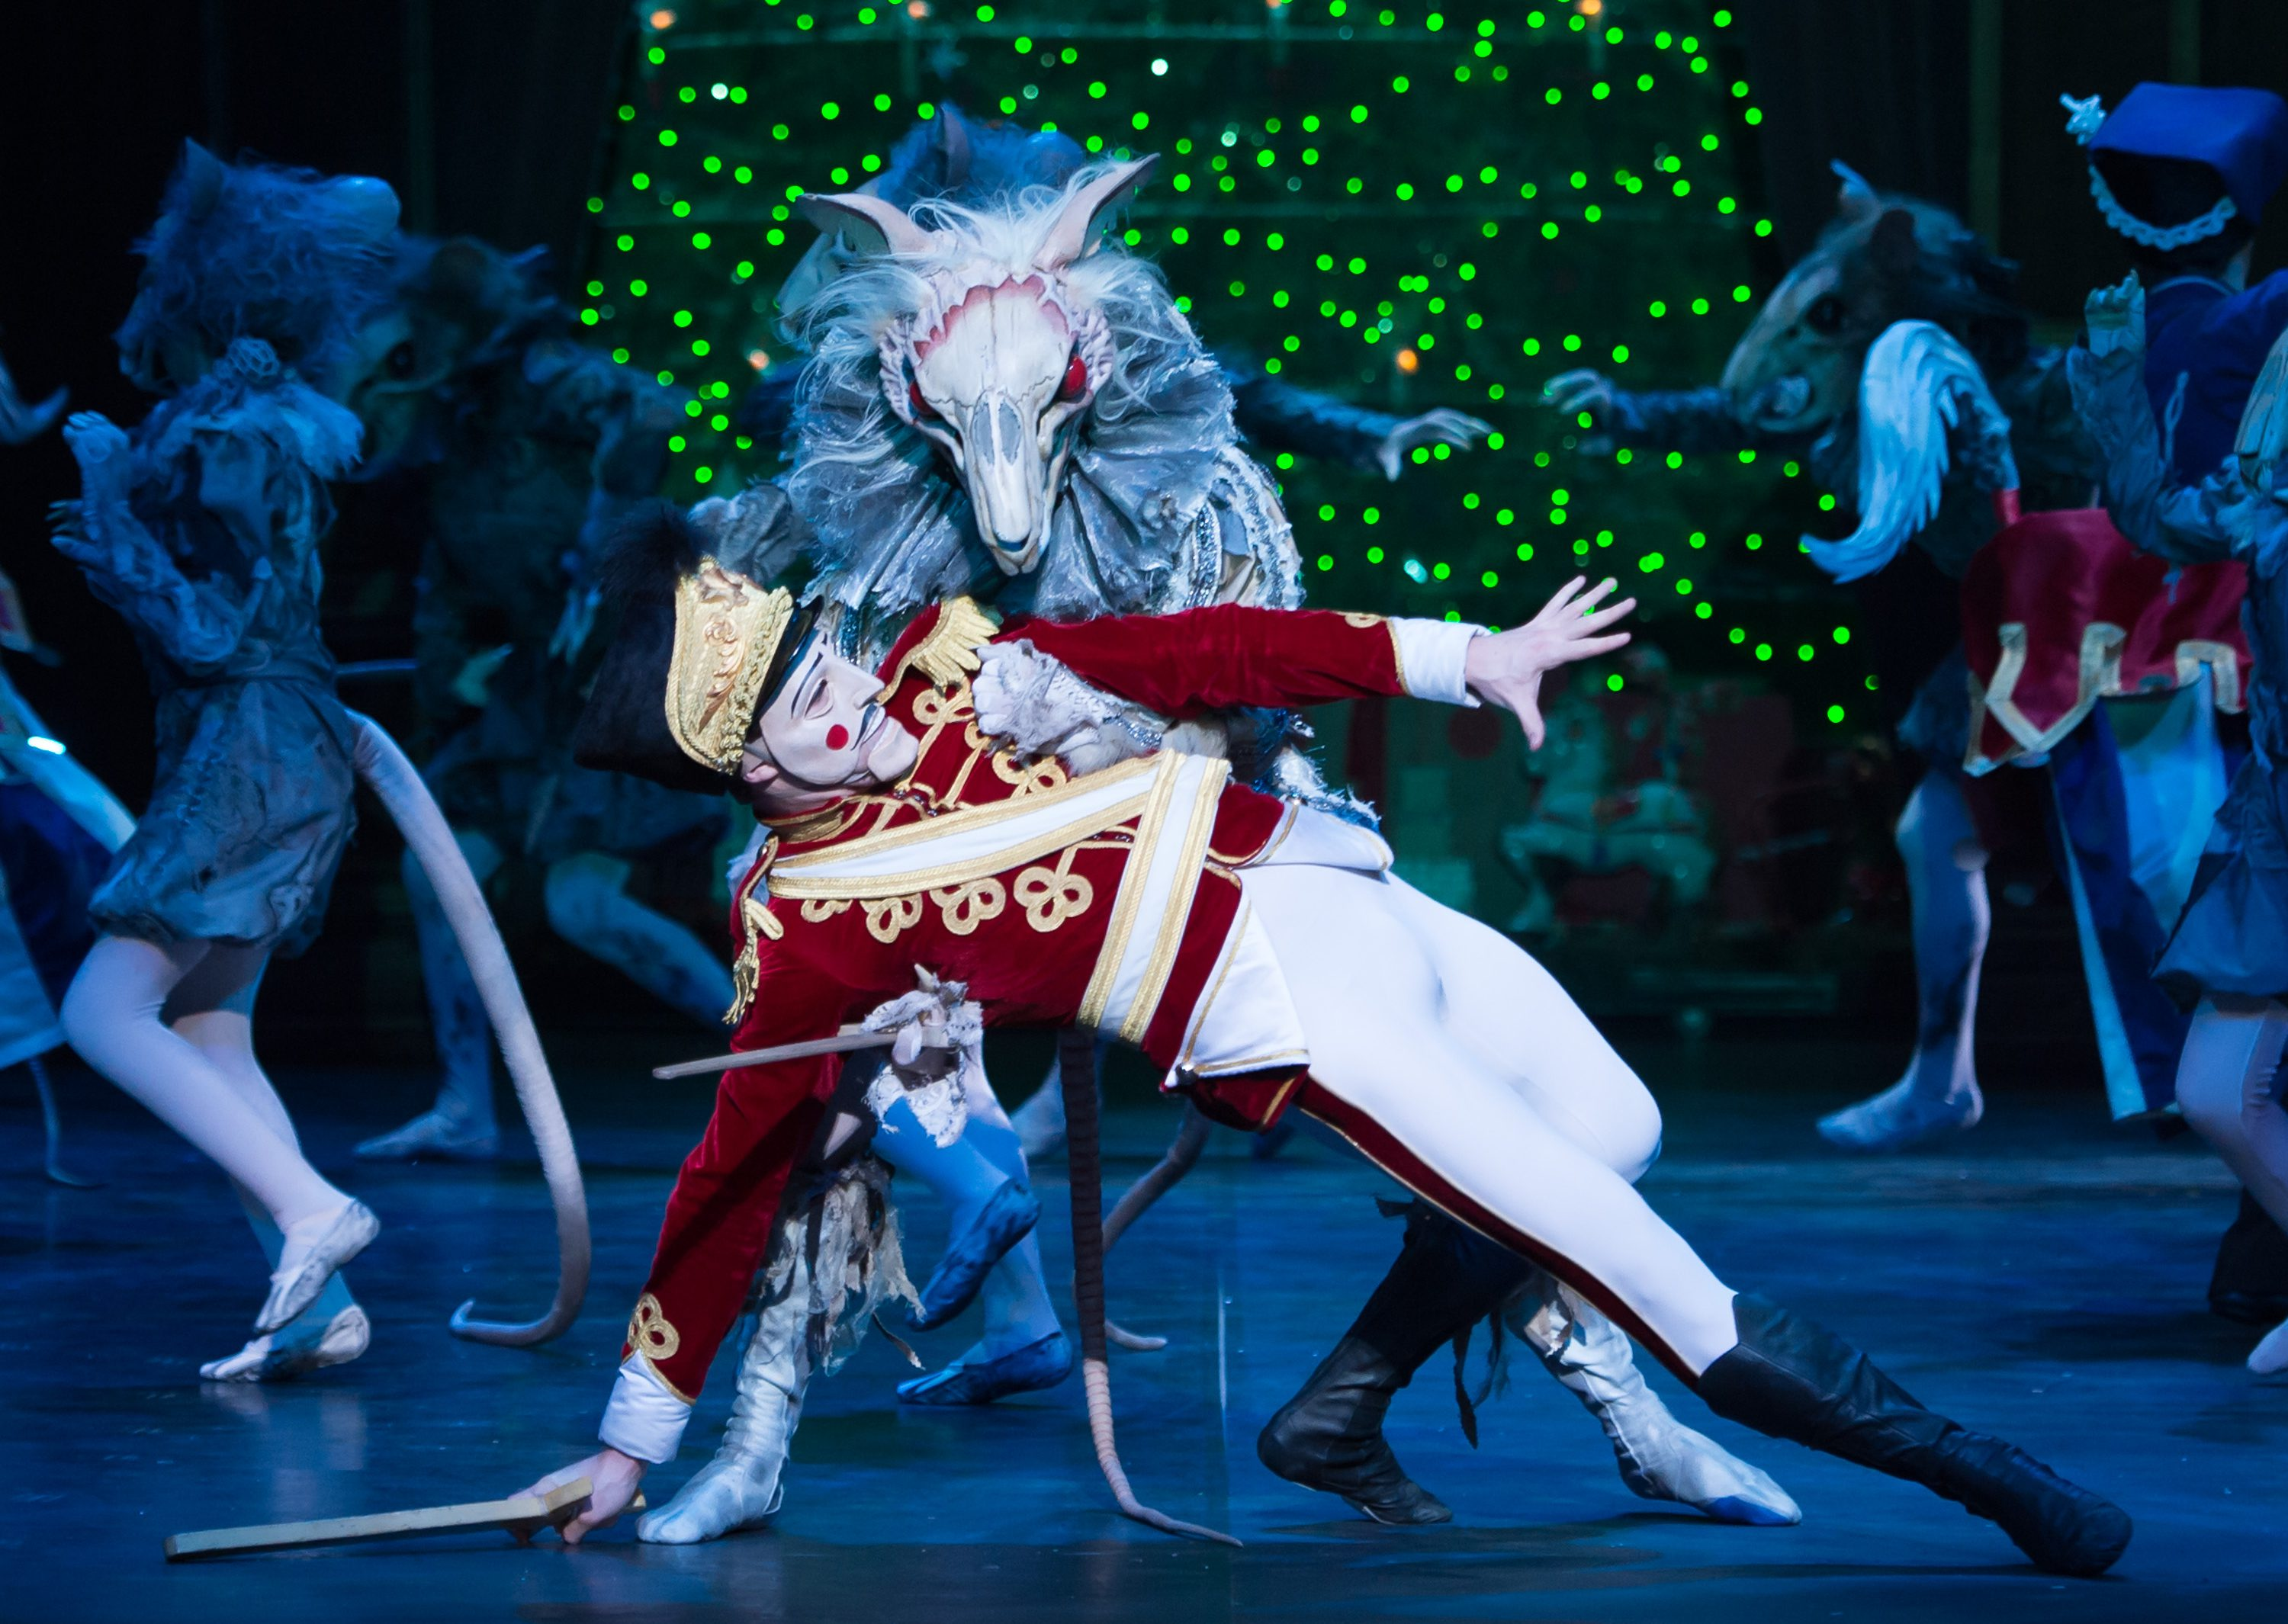 English National Ballet. Wayne Eagling's Nutcracker. The Mouse King and Nutcracker.